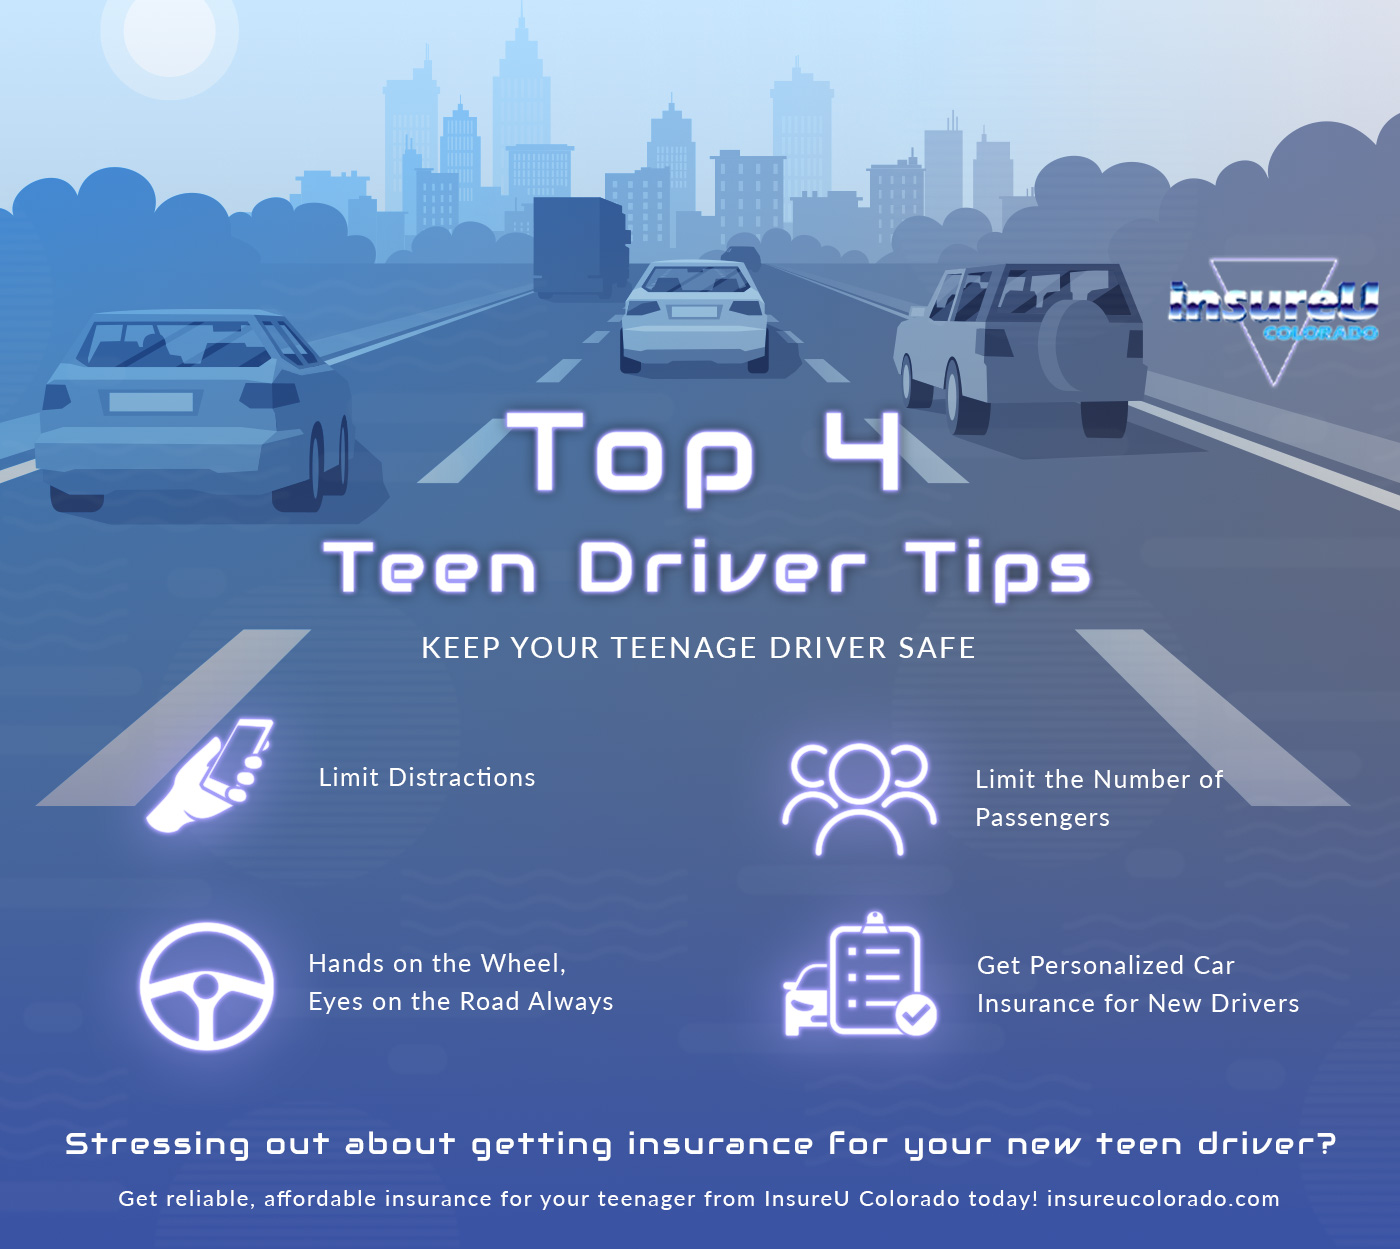 Top 4 Teen Driver Tips Infographic